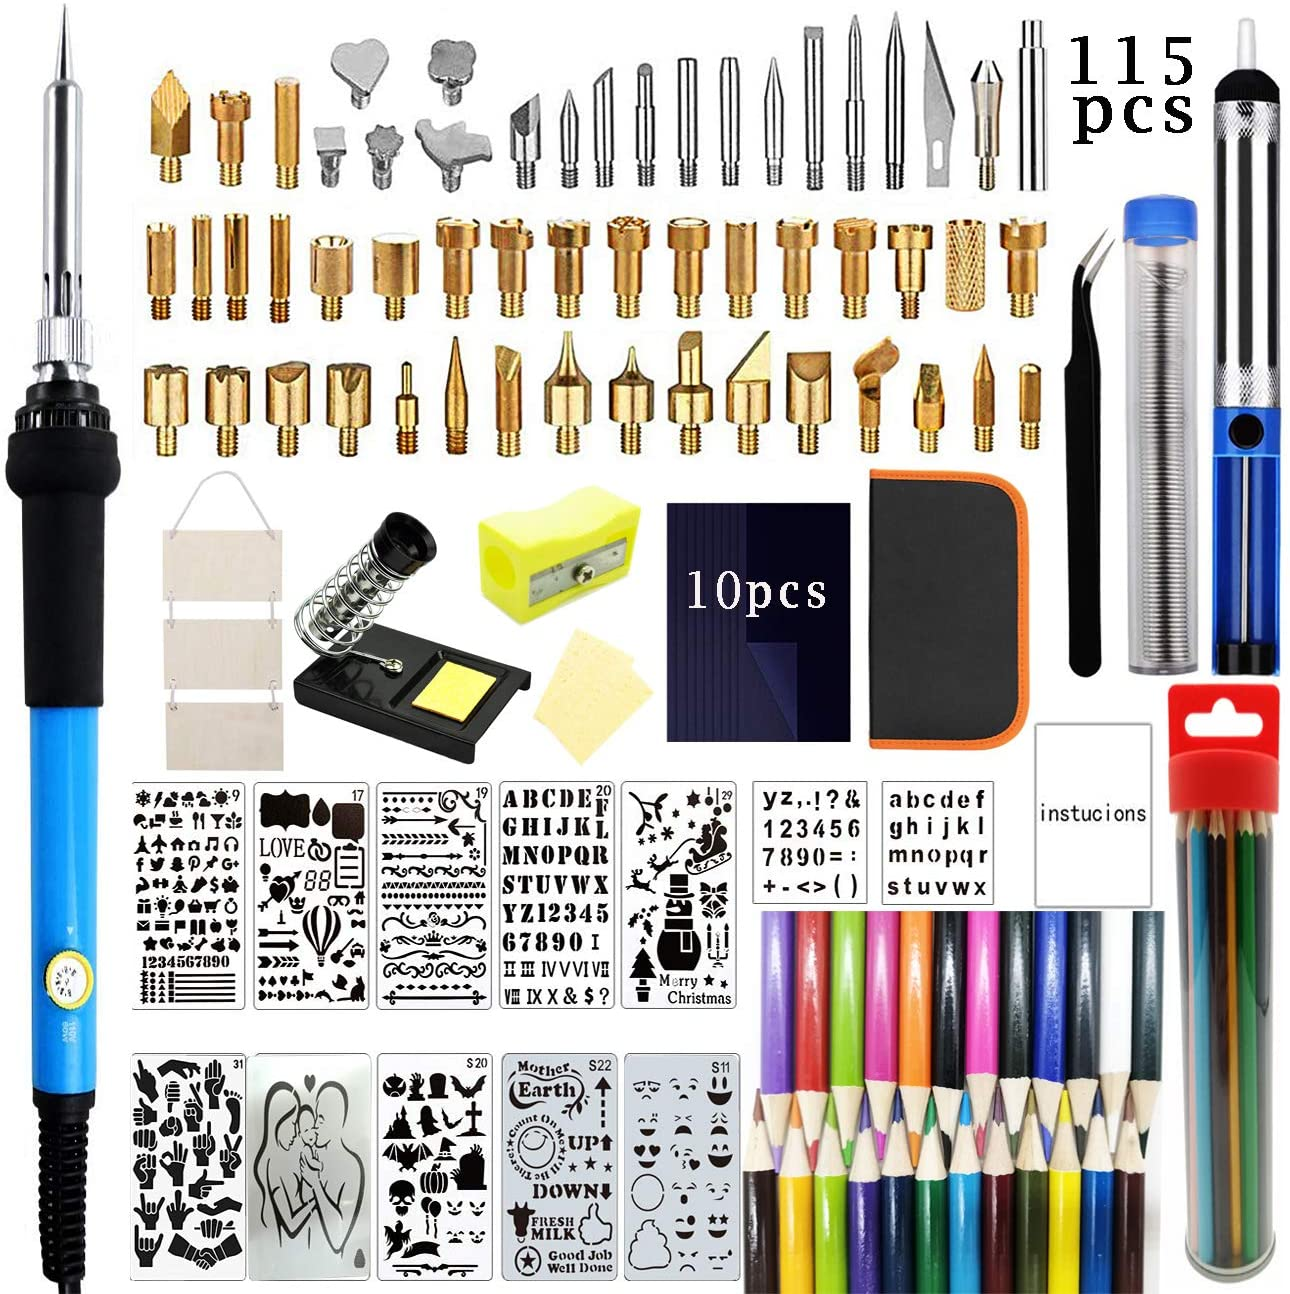 Onmust Wood Burning Kit, Professional Pyrography Kit with Adjustable Temperature Soldering Iron, Woodburning Tool for Embossing Carving Soldering Tips